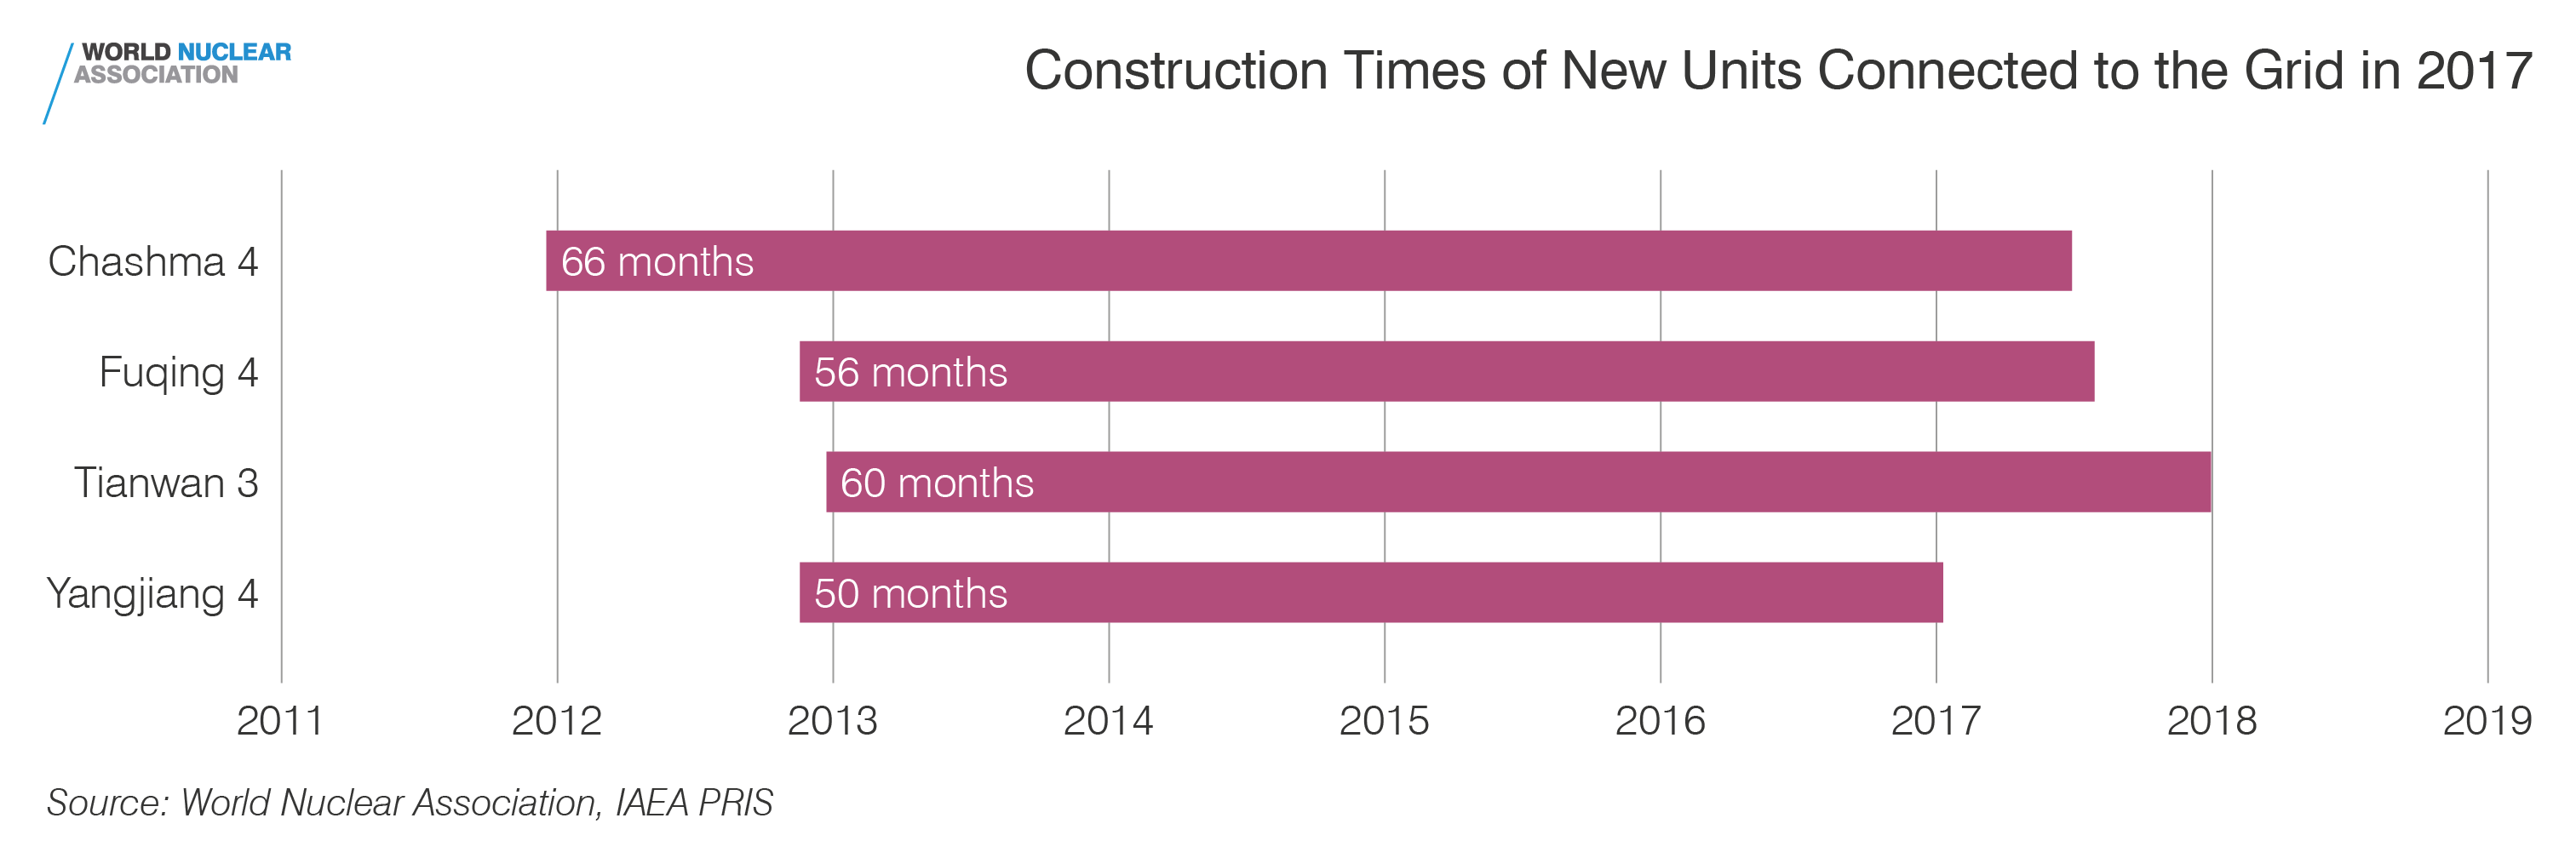 Construction times of new units connected to the grid in 2017